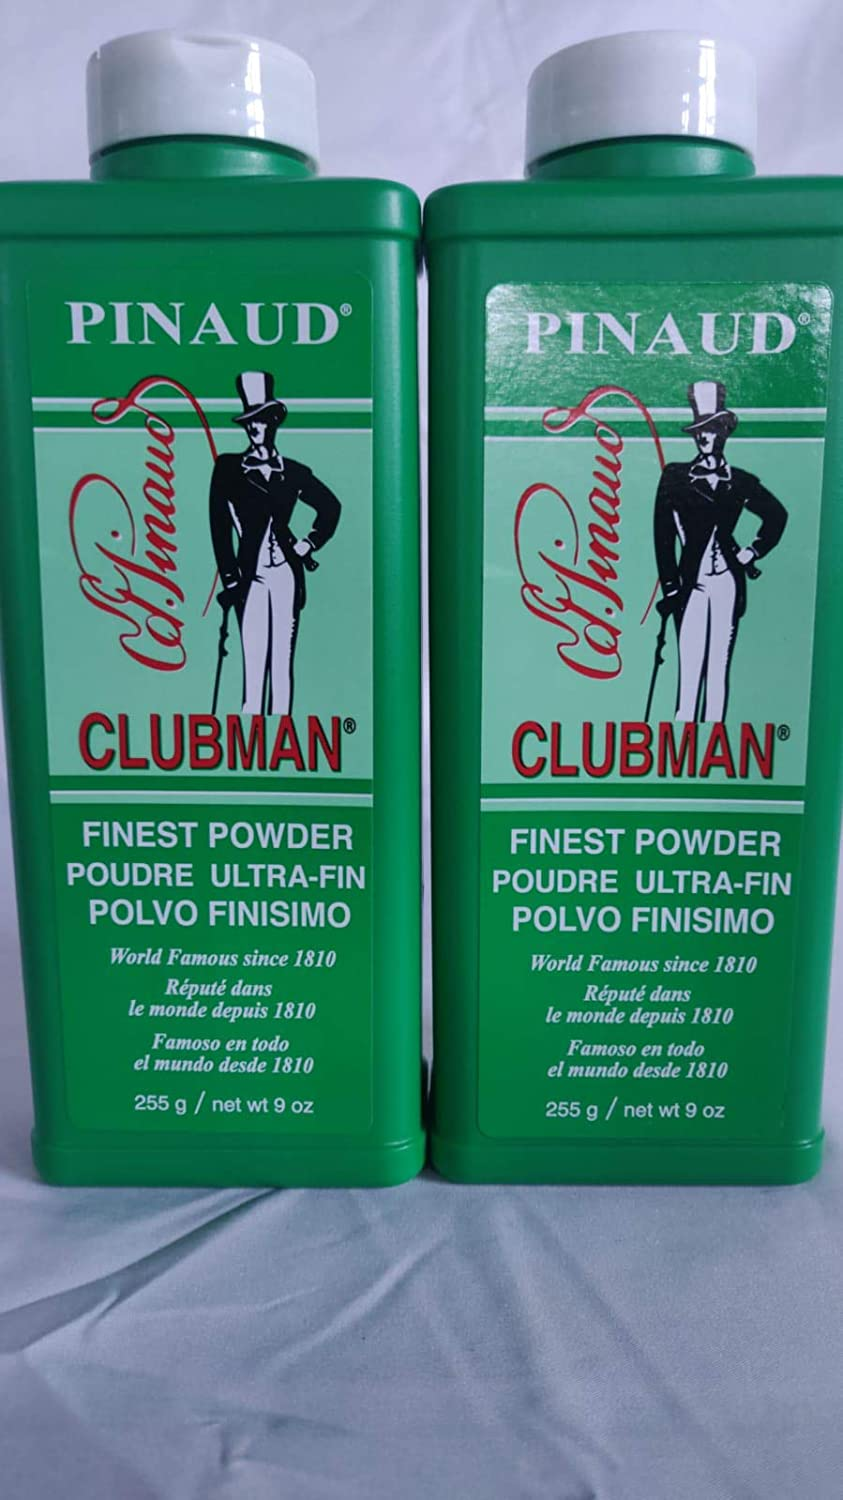 Pinaud Clubman Powder Cheap mail order shopping 9 oz of sold out Pack 2